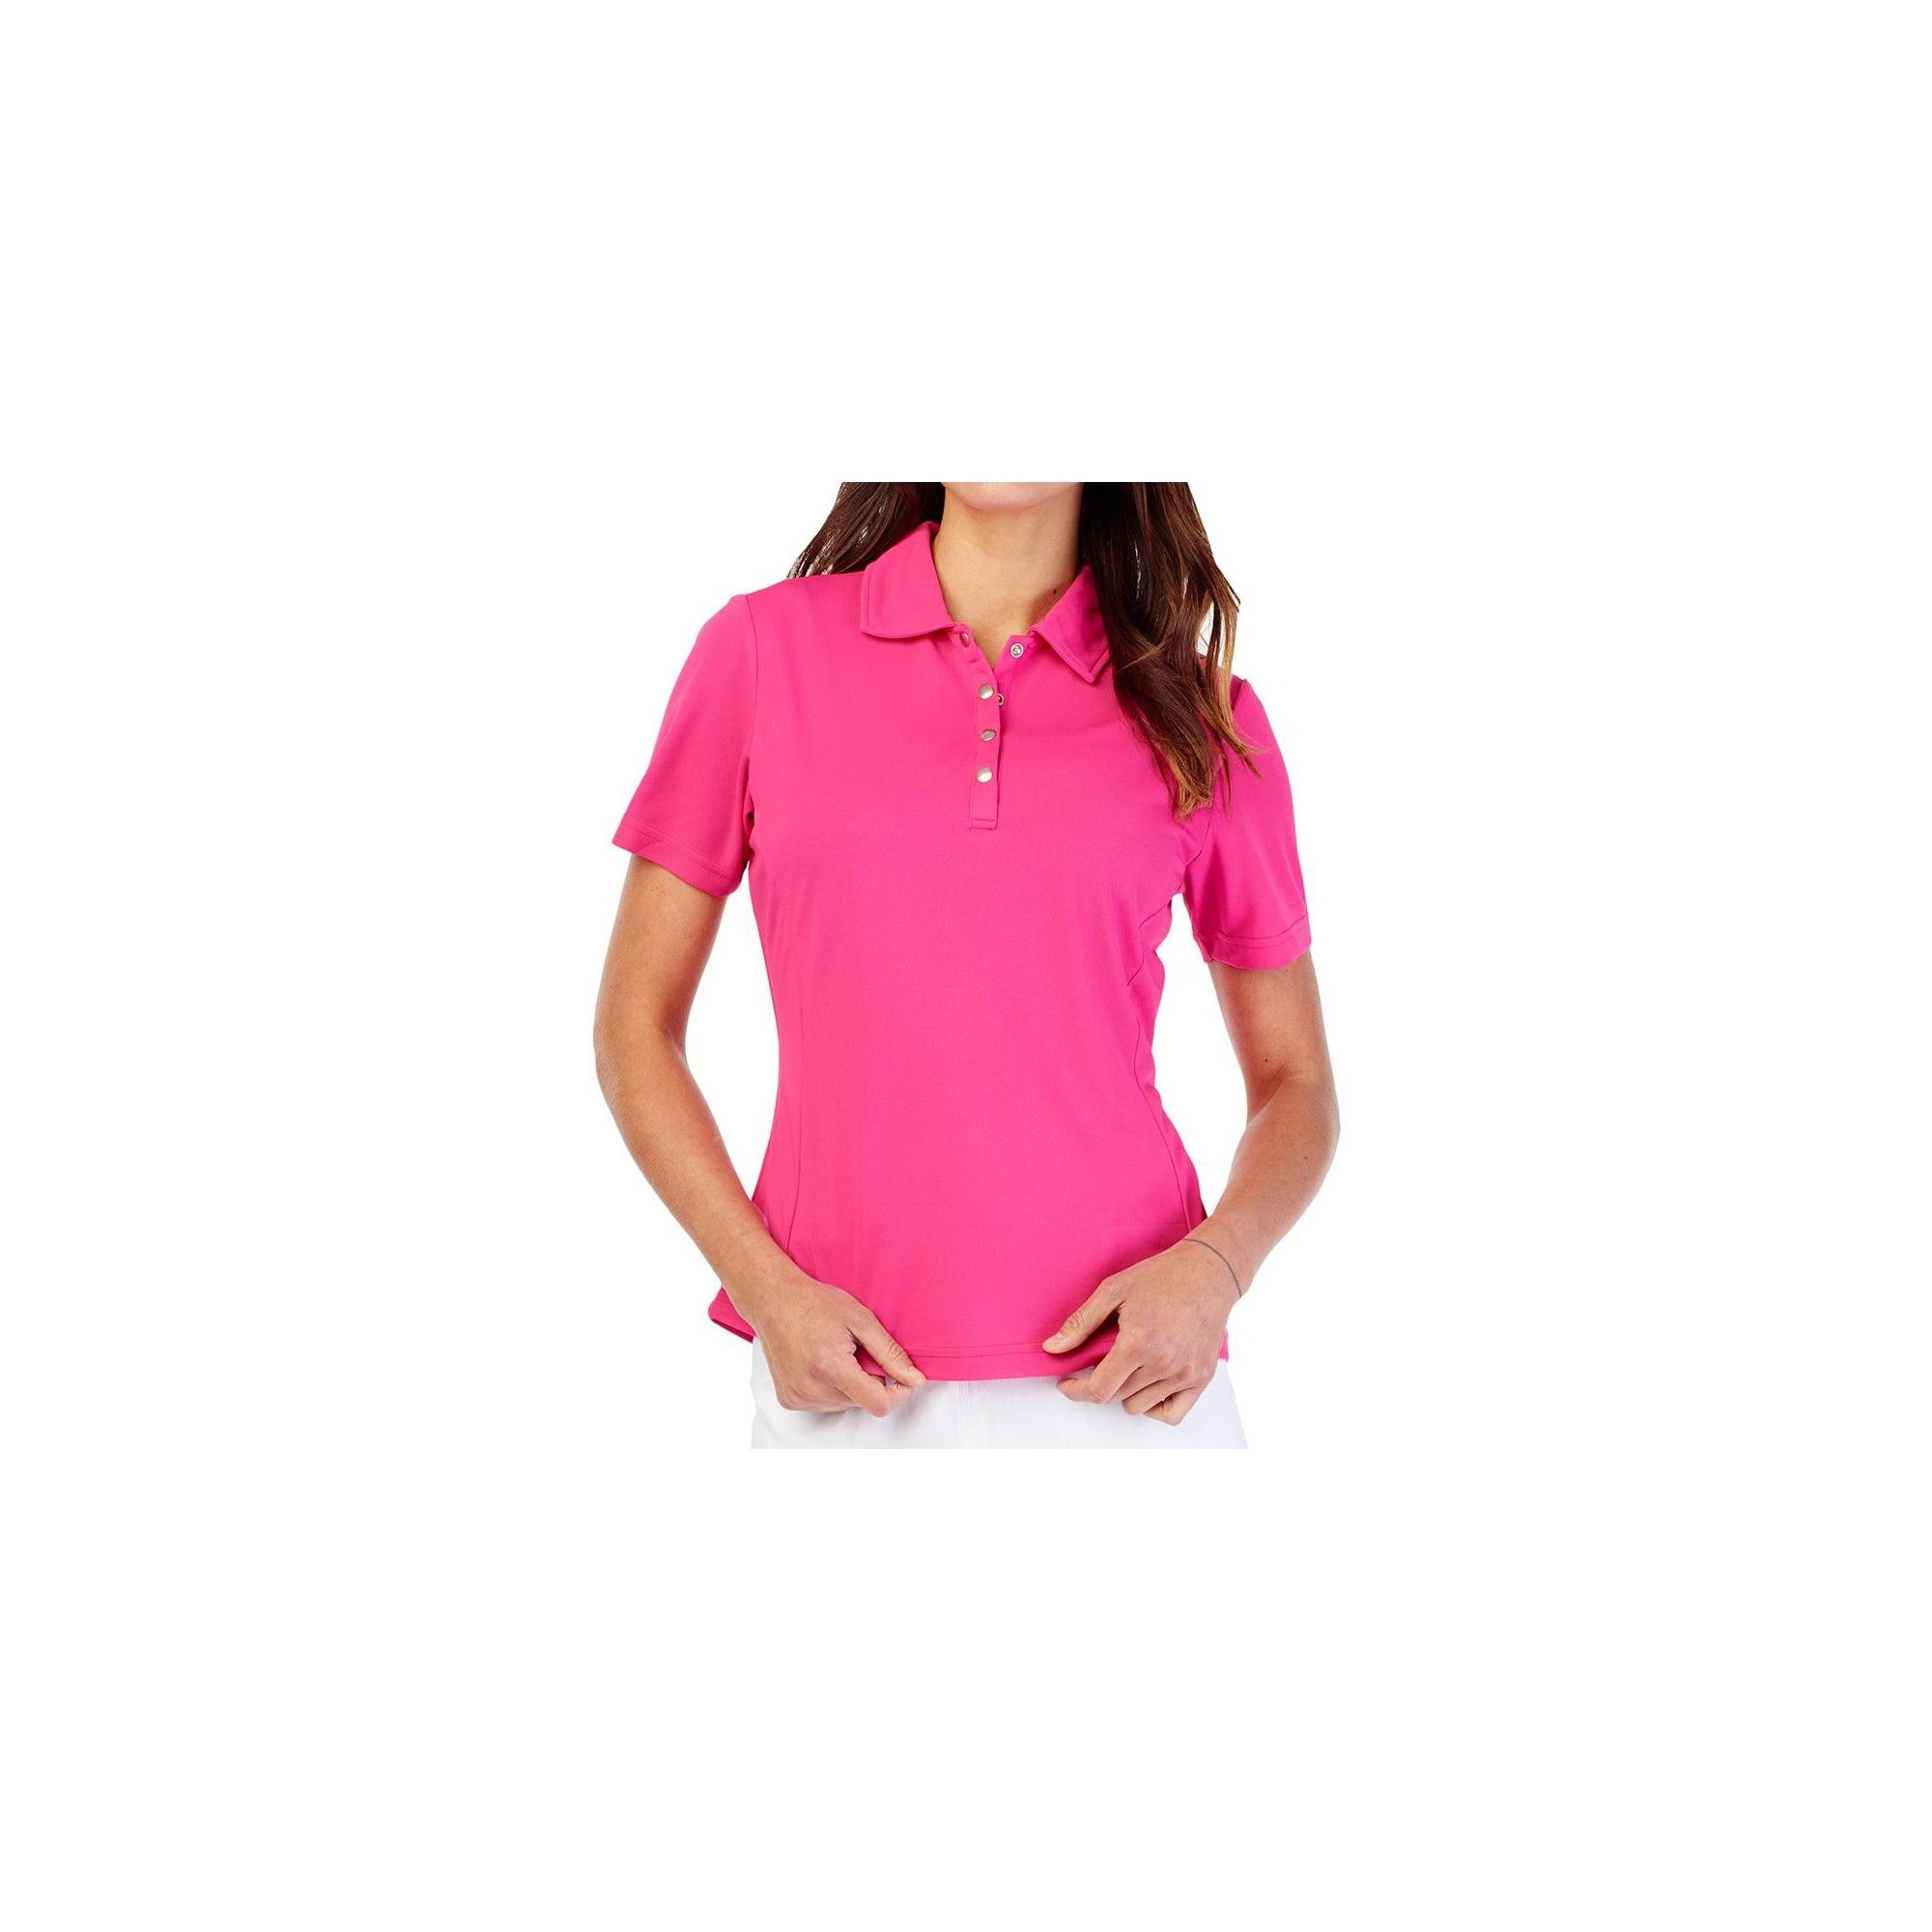 24b7789cd Women s Ggblue Tina Polo Cerise Pink X-Small in 2019